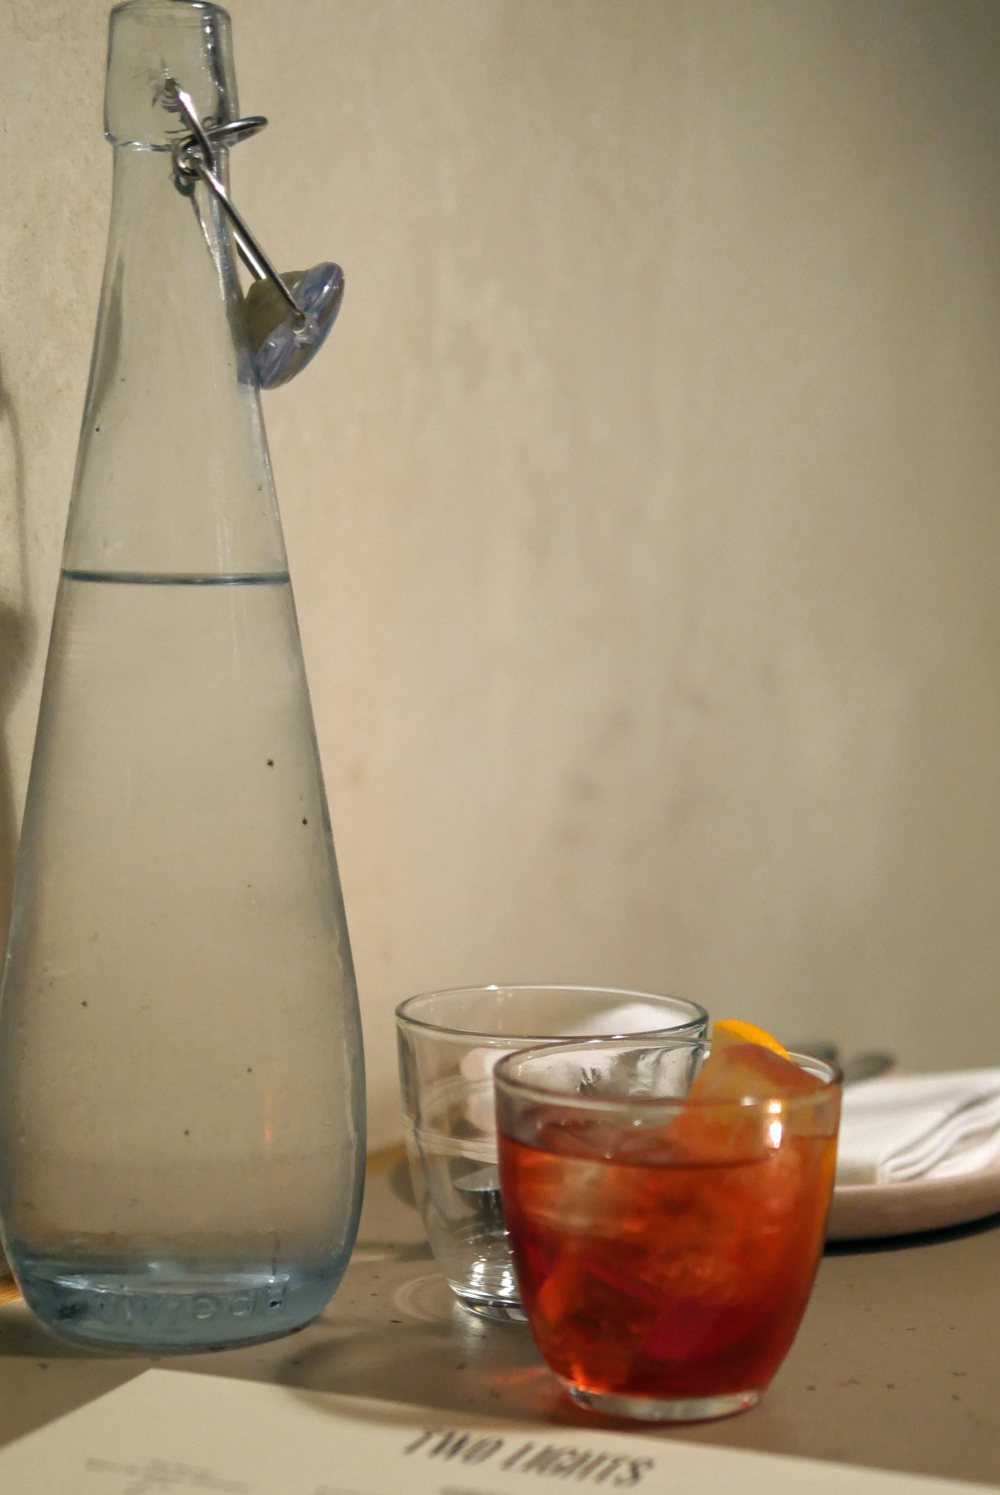 Water and Negroni at 2 lights